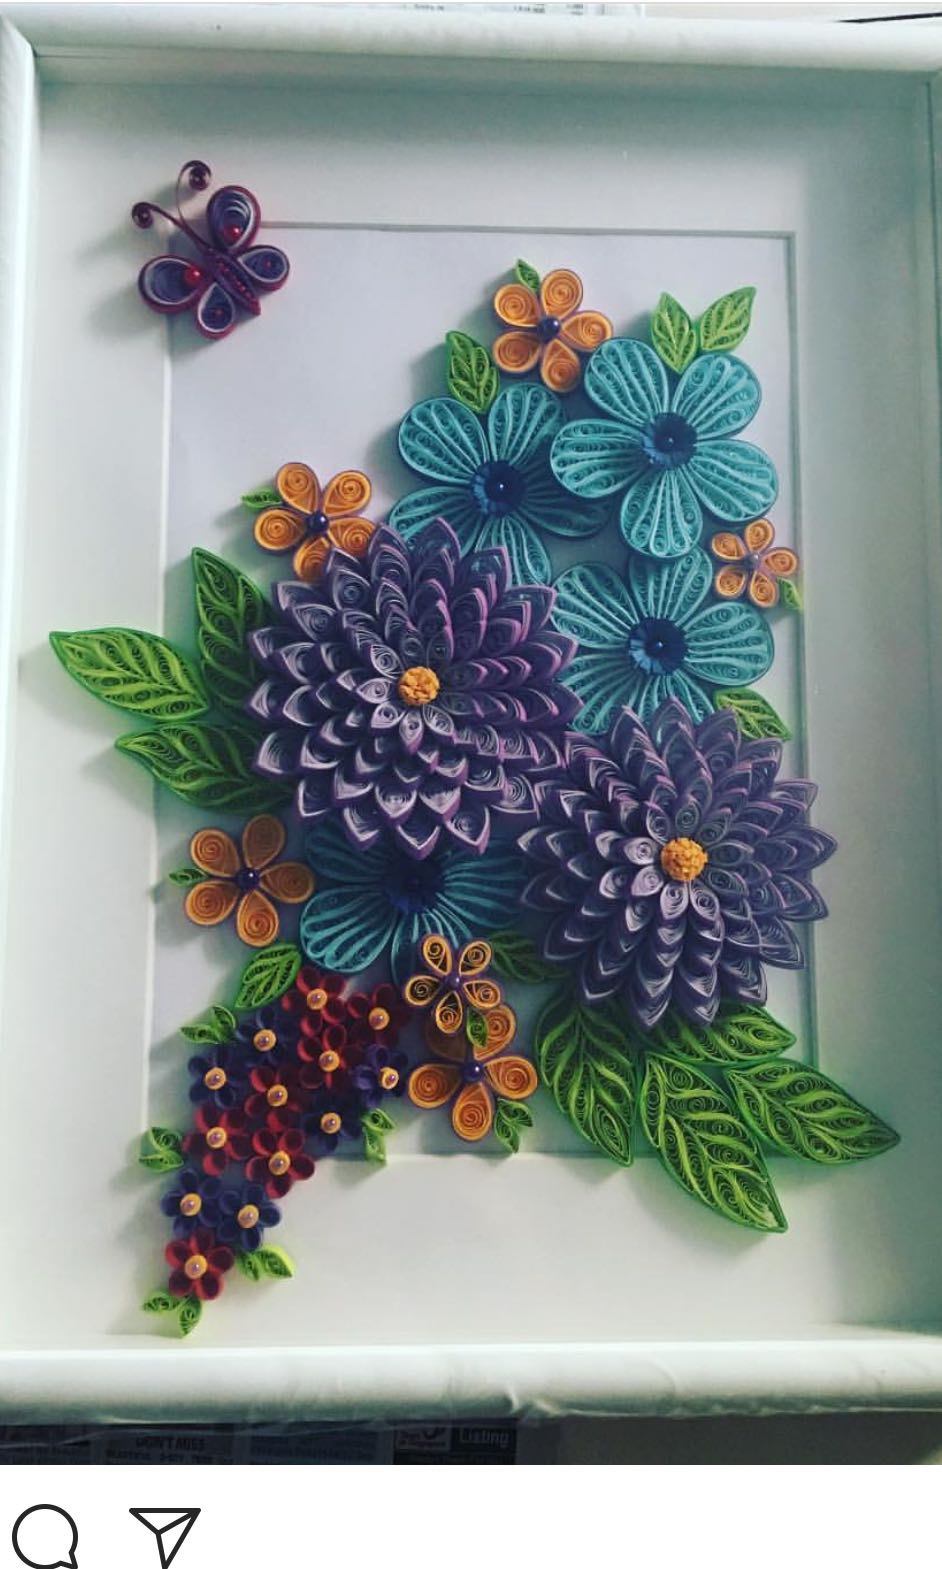 customisable paper quilling wall hangings design craft handmade rh sg carousell com quilling wall hanging designs images quilling designs wall hangings